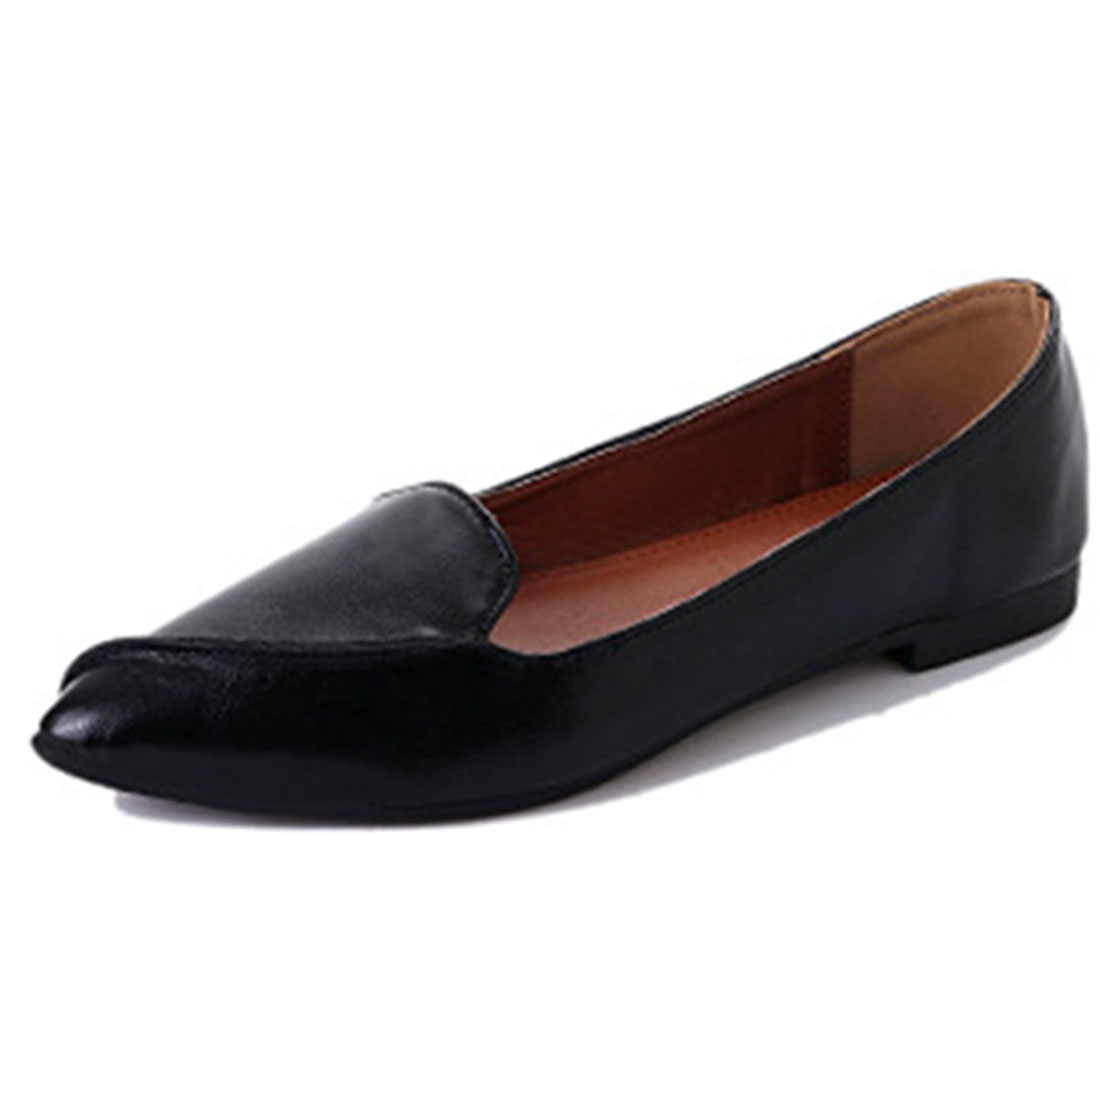 Spring Summer Ladies Ballerinas Dolly Shoes Pointed Toe PU Leather Women Ballet Flats Plus Size Female Moccasins Womens Loafers baiclothing women casual pointed toe flat shoes lady cool spring pu leather flats female white office shoes sapatos femininos